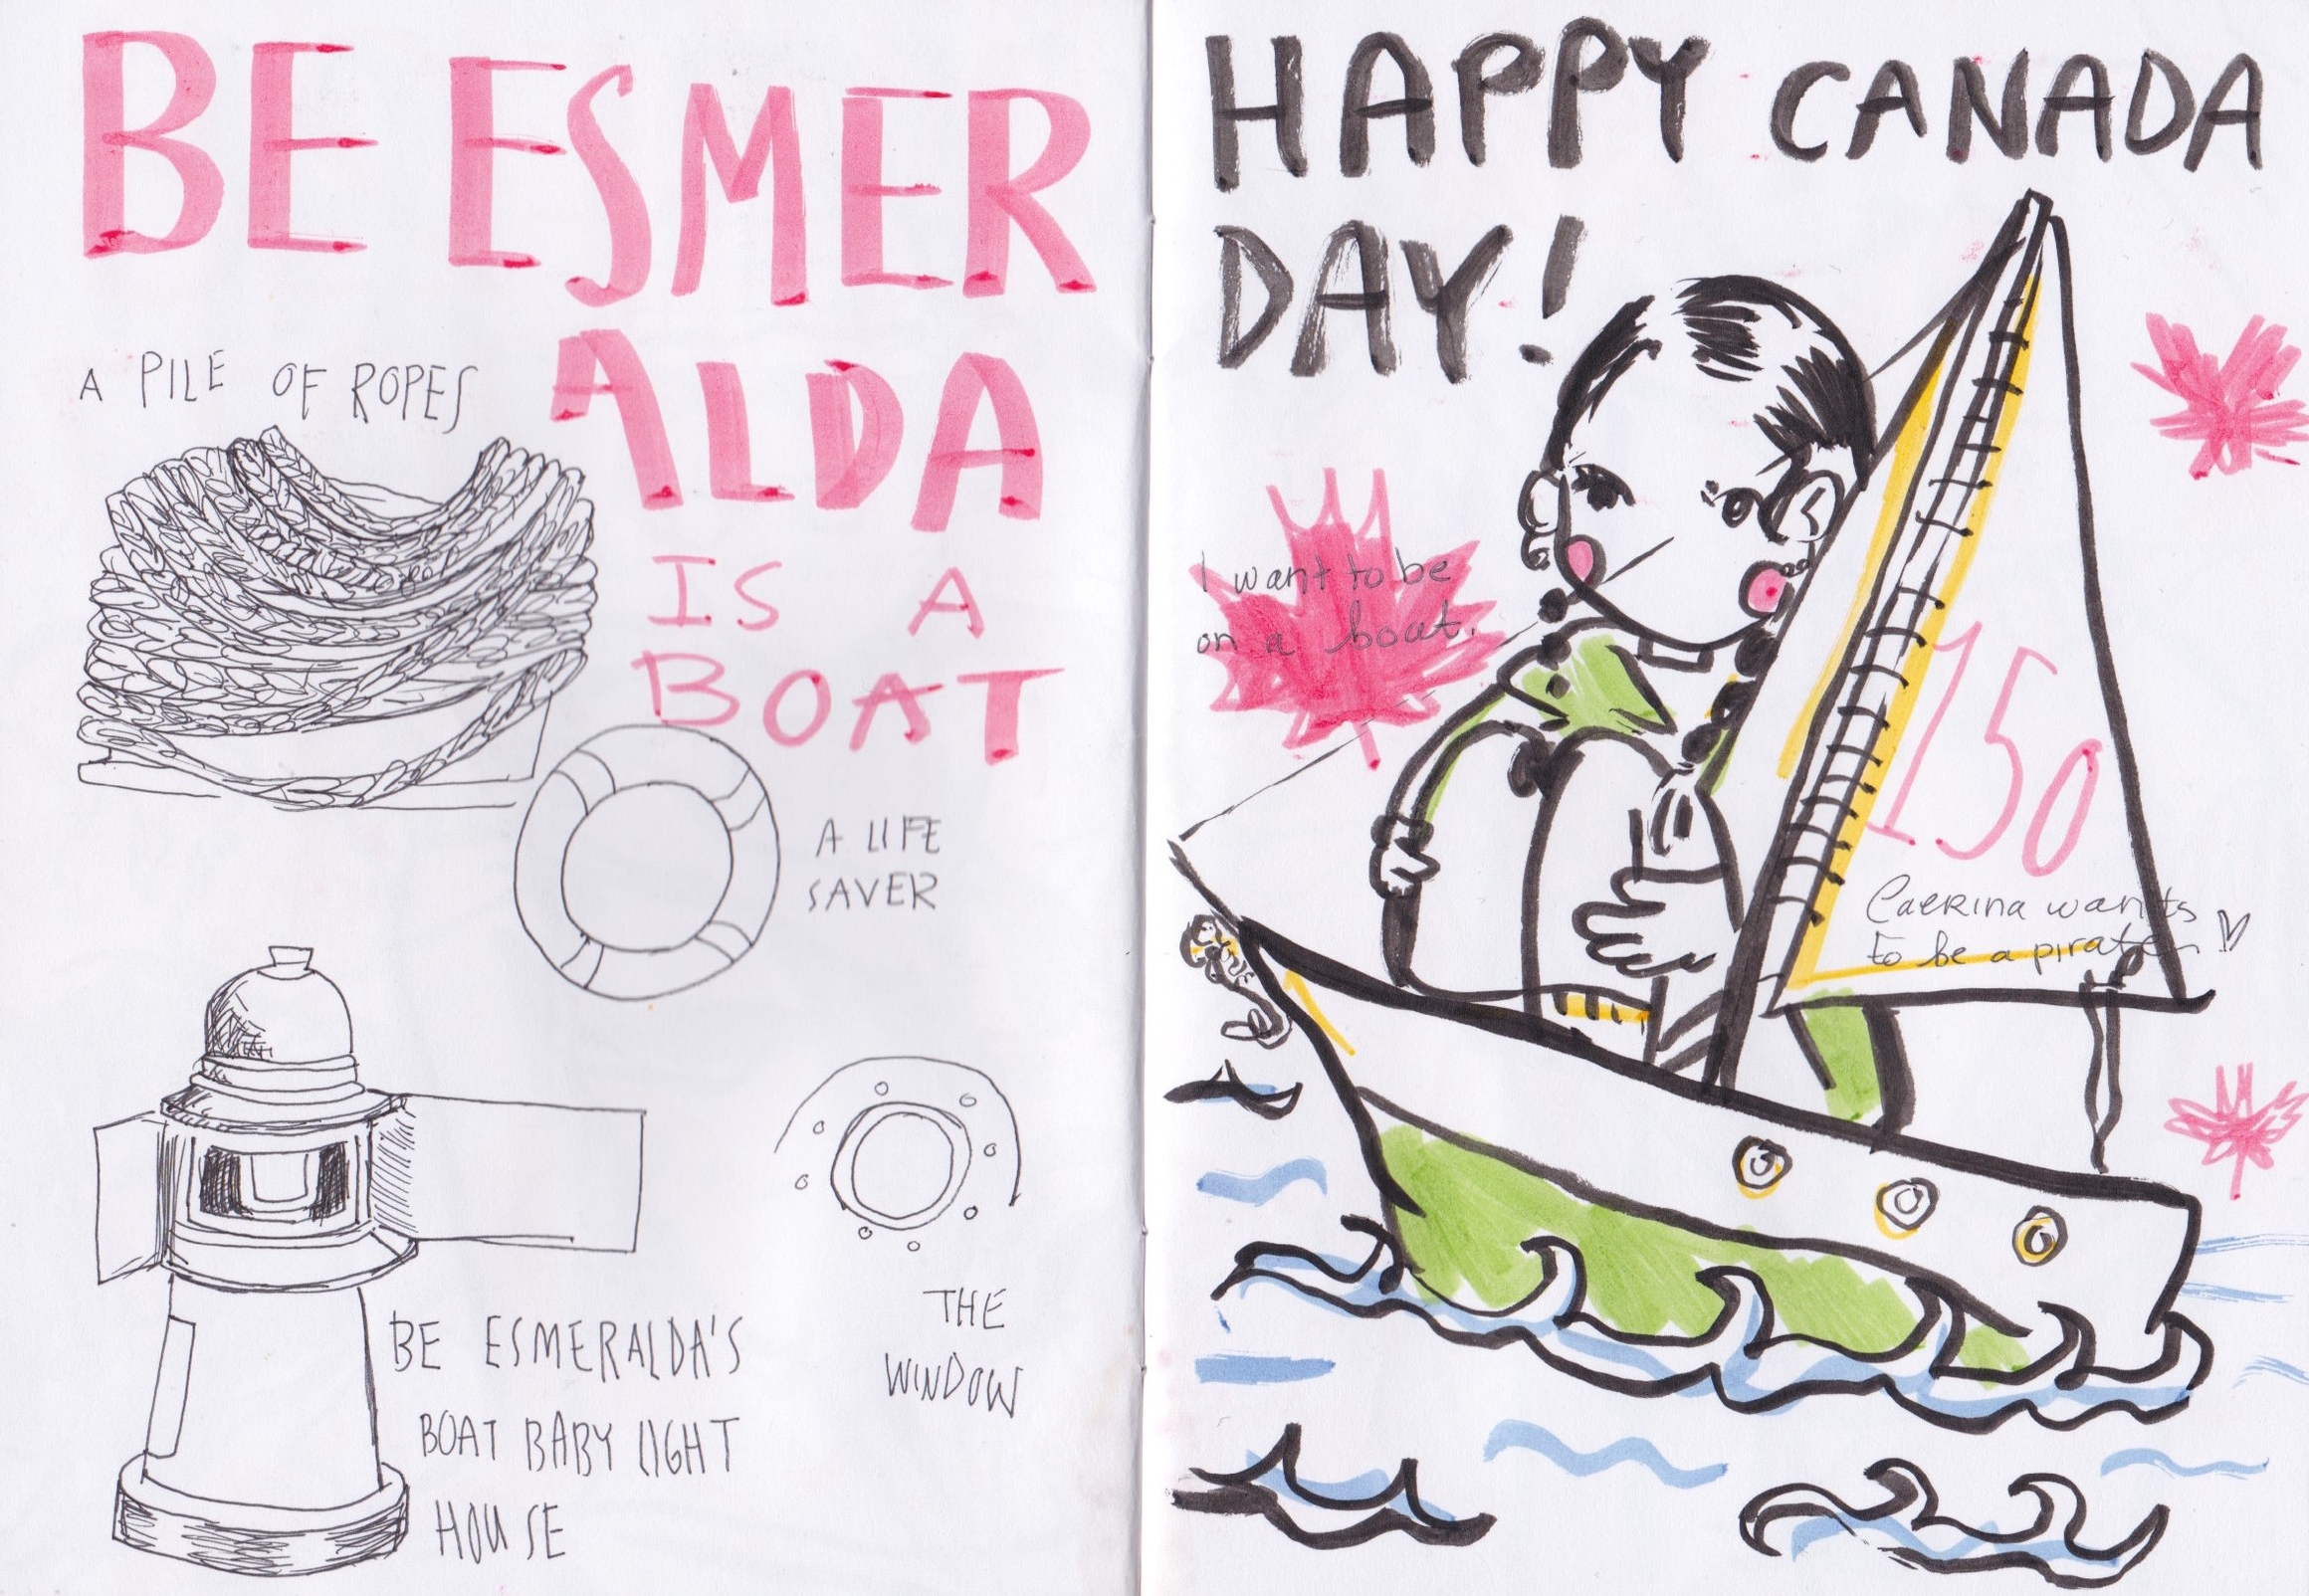 Canada Day doodle at the Halifax Seaport Farmer's Market.